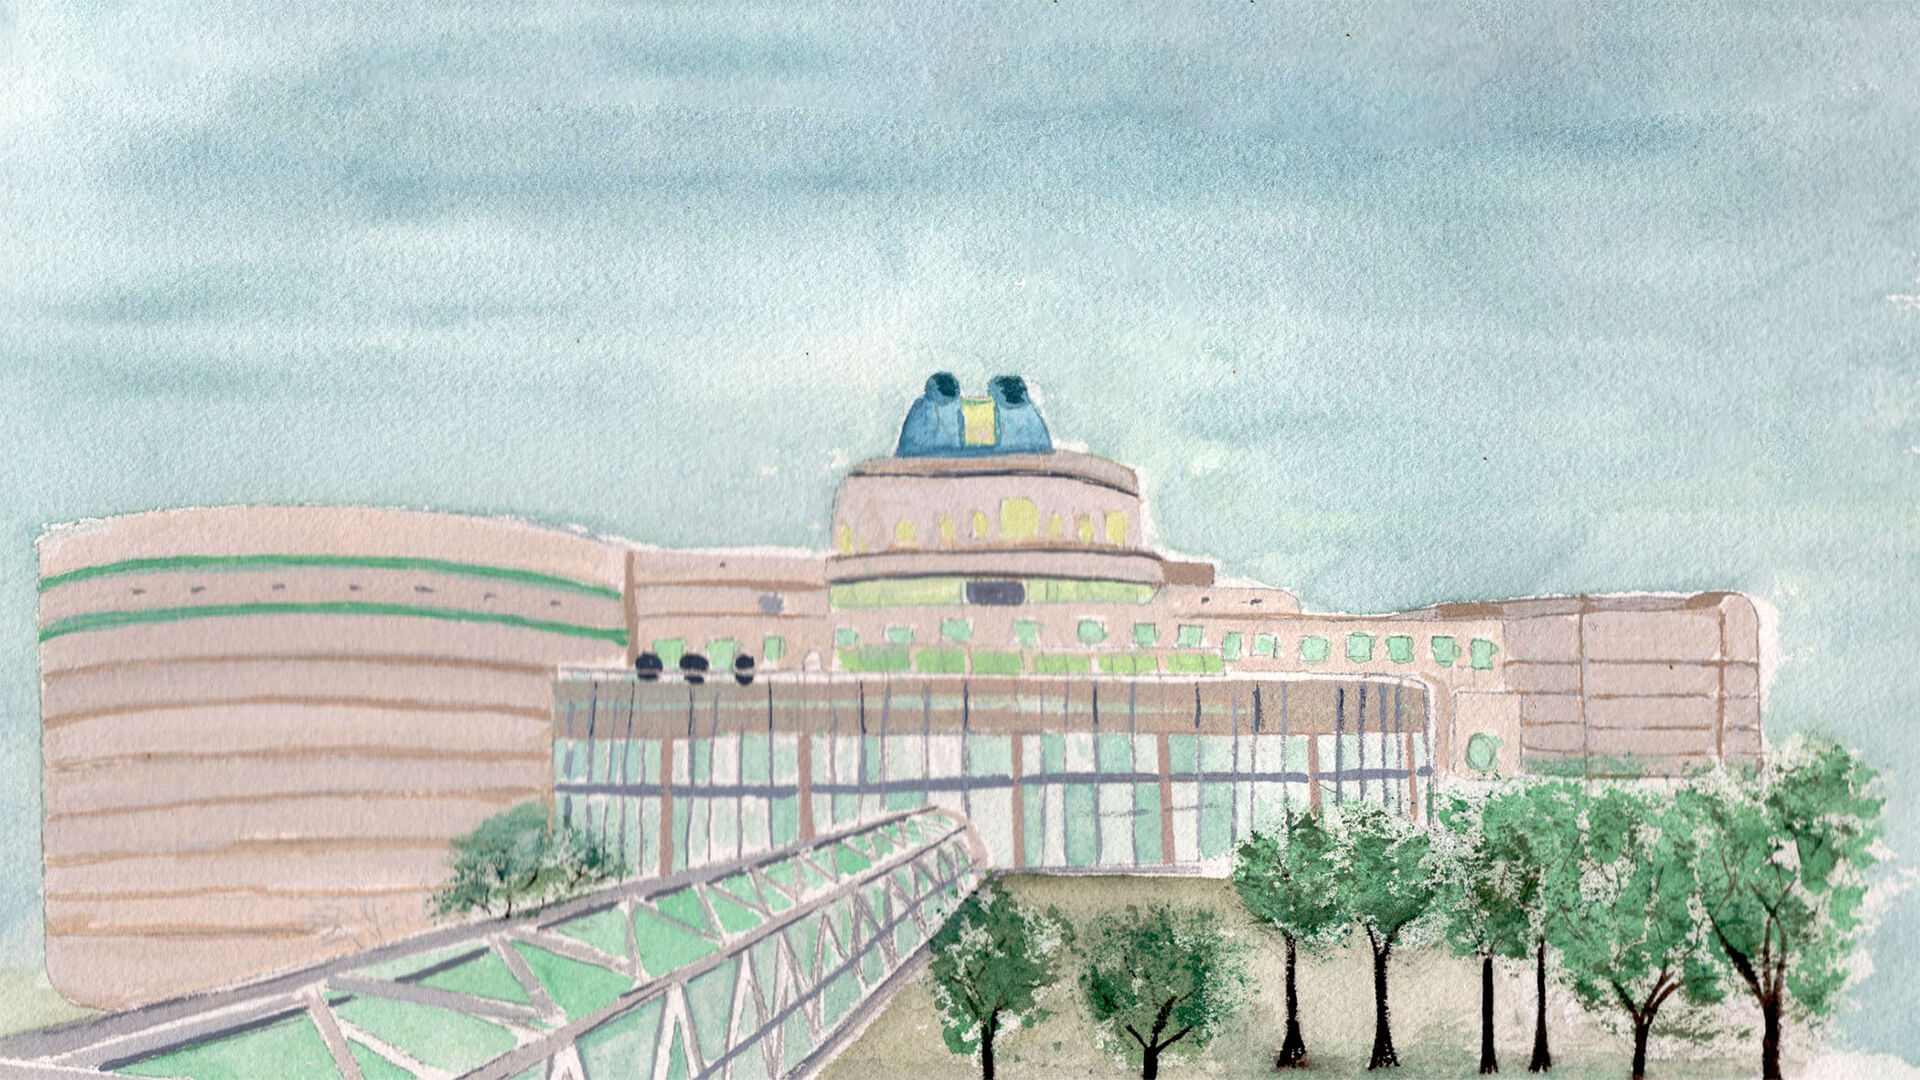 Watercolor Image of Orlando Science Center